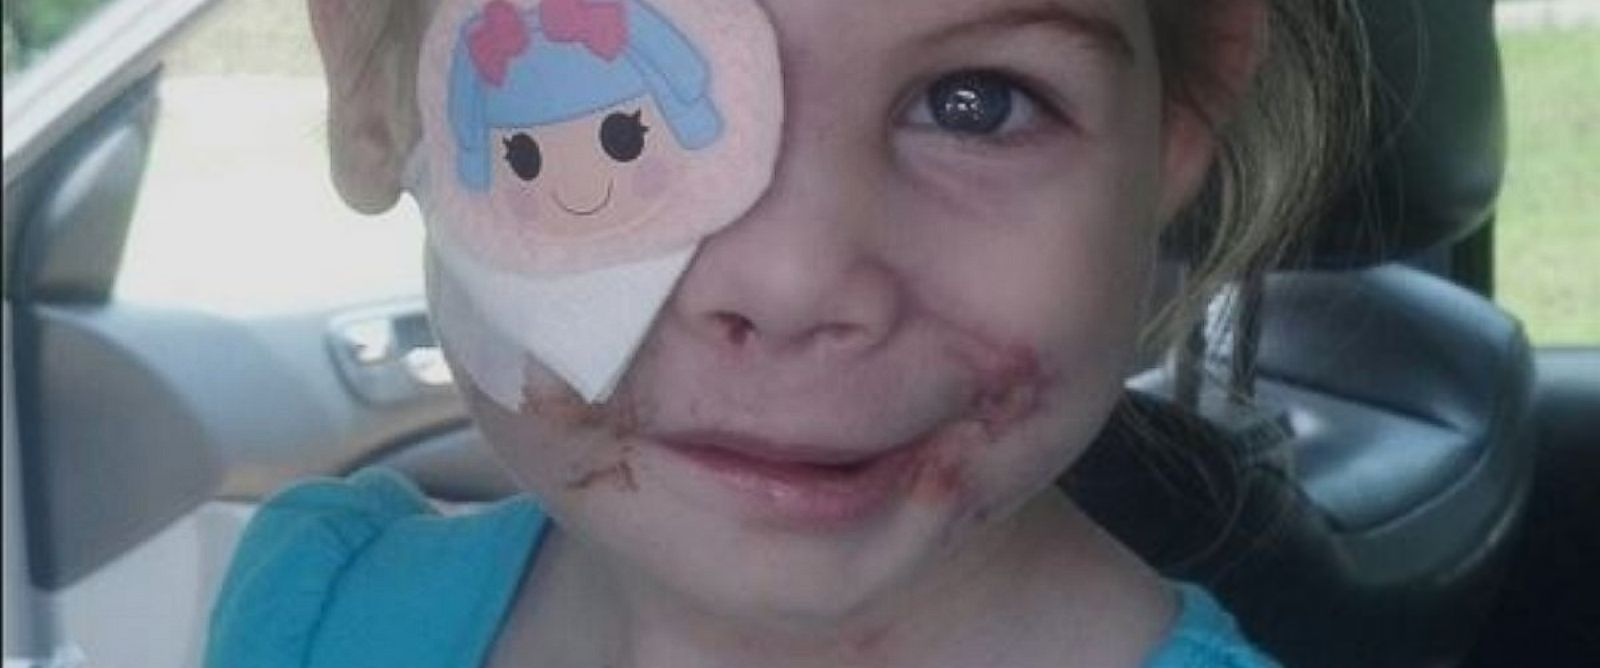 PHOTO: KFC donates $30K to help 3-year-old dog attack victim, Victoria Wilcher, after she was allegedly asked to leave a KFC because of her scars.